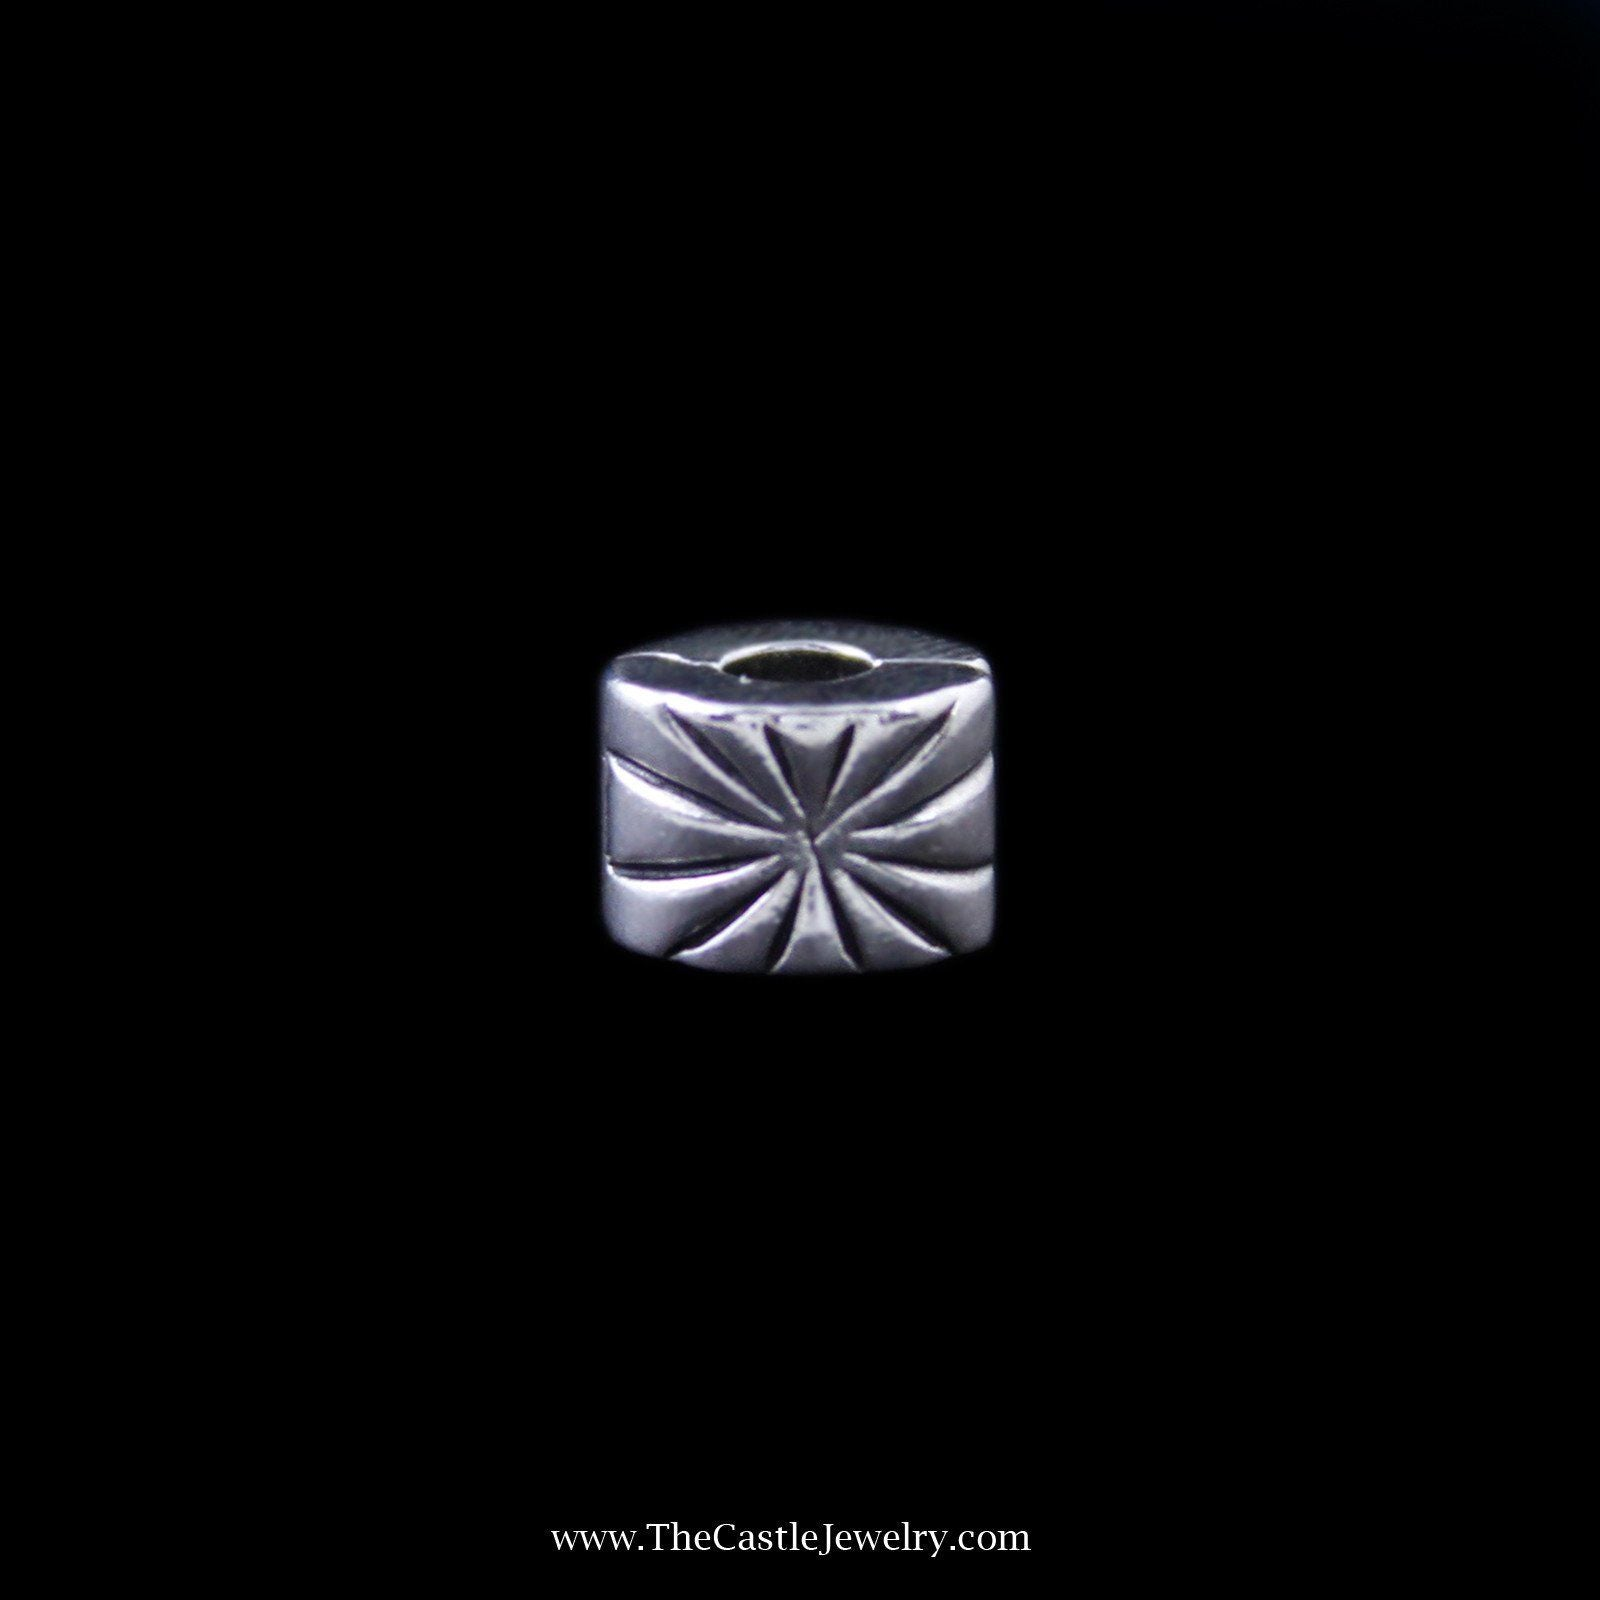 Pandora Sunburst Clip on Charm in Sterling Silver